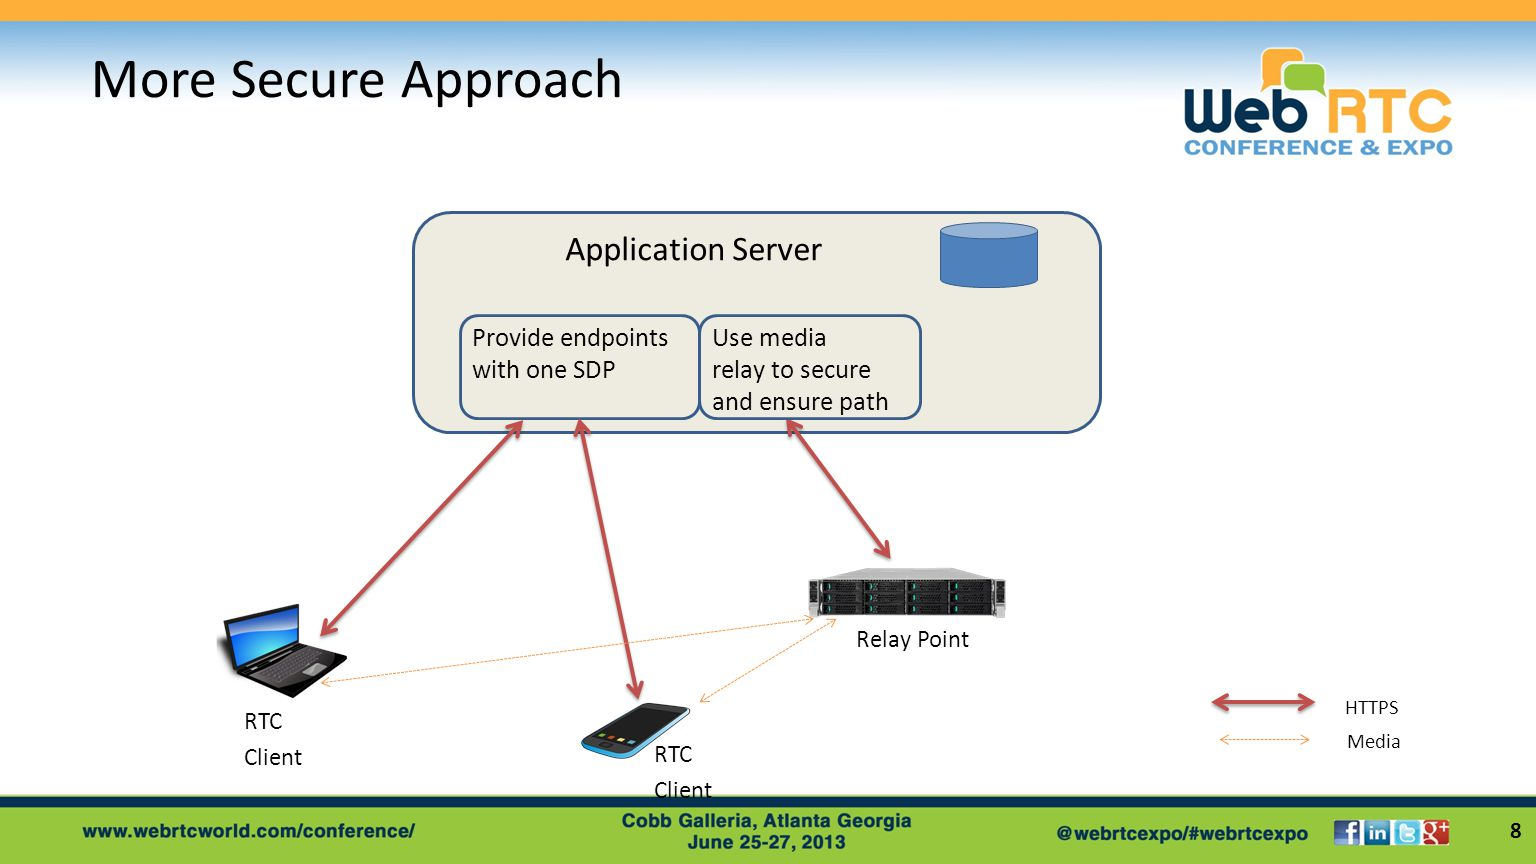 More Secure Approach 8 Application Server Provide endpoints with one SDP Use media relay to secure and ensure path RTC Client RTC Client HTTPS Relay Point Media